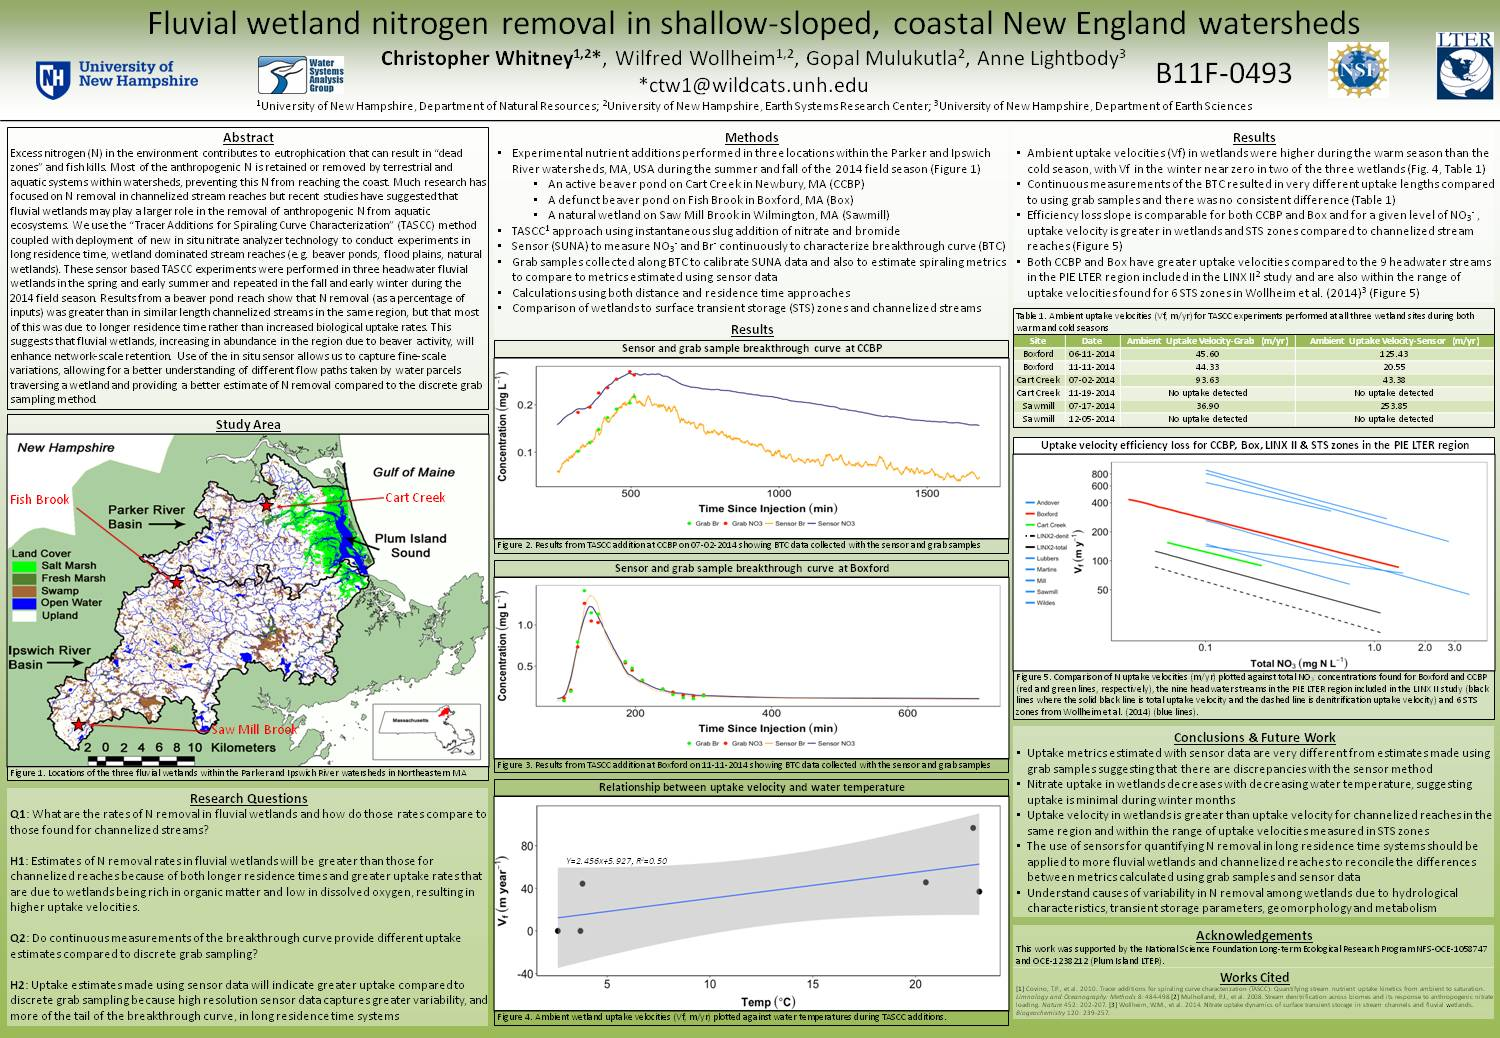 Fluvial Wetland Nitrogen Removal In Shallow-Sloped Coastal New England Watersheds by ctw1